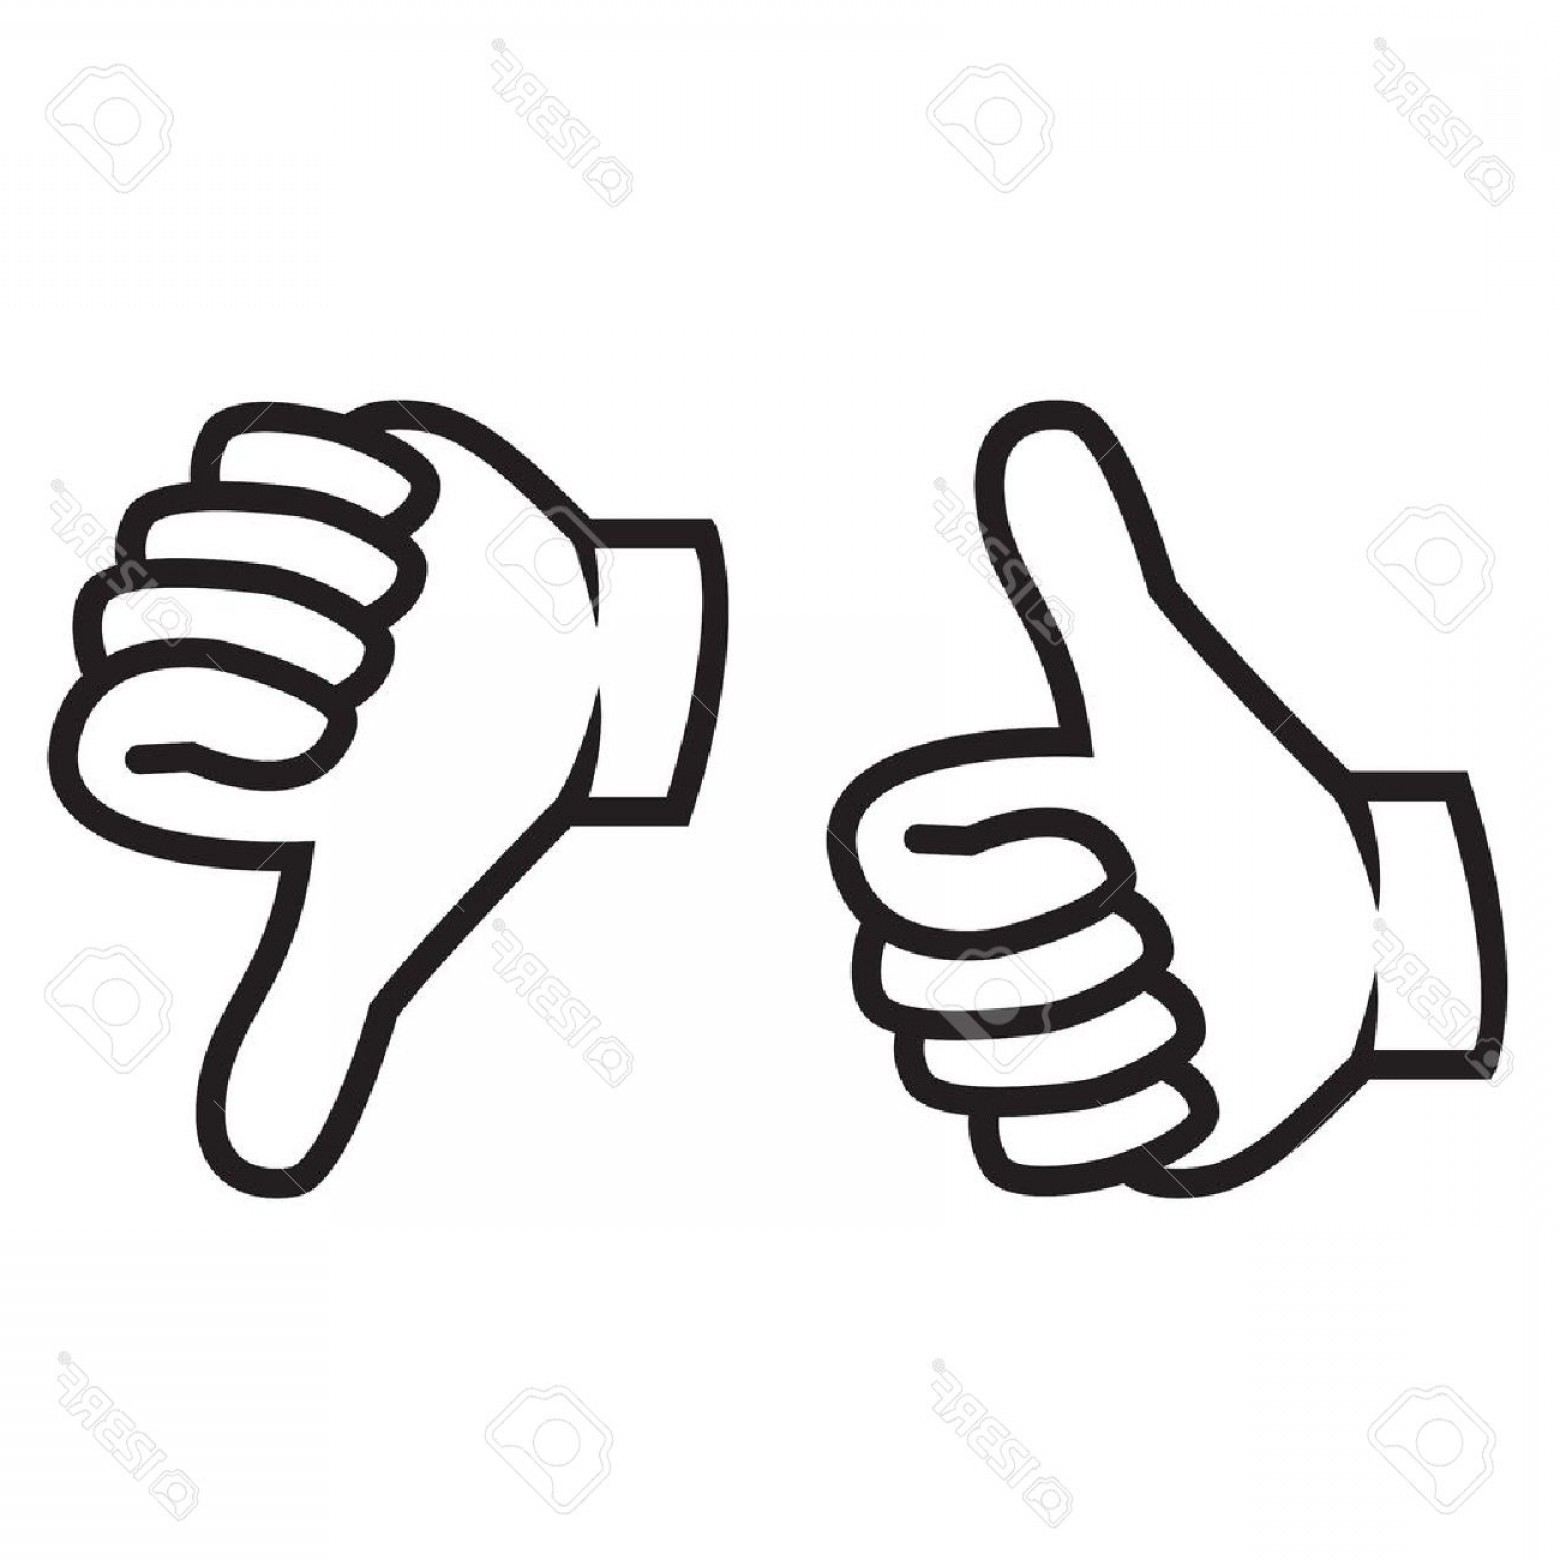 Vector Thumbs Up Down: Photostock Vector Thumbs Up And Down Gesture